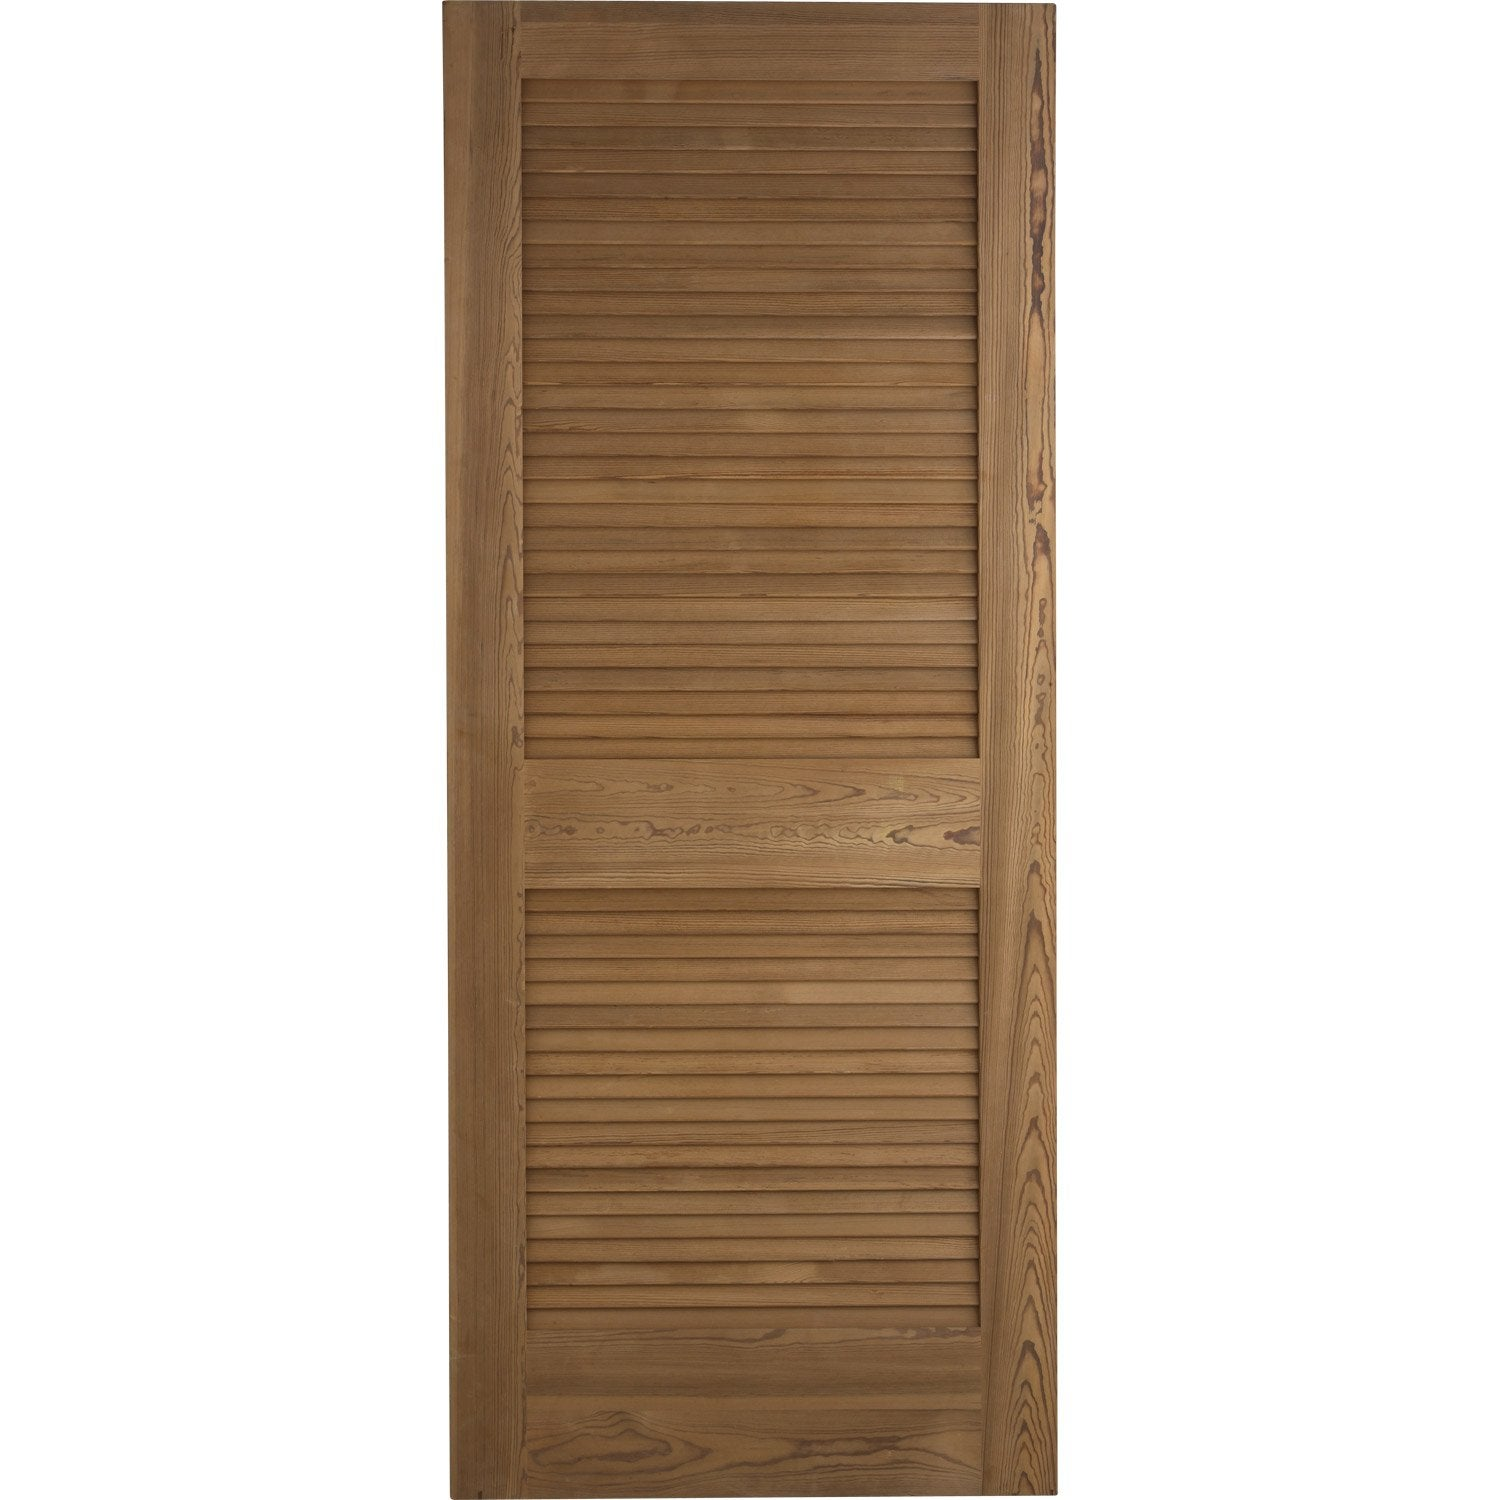 Porte coulissante pin plaqu marron java artens 204 x 73 for Porte en bois chambre